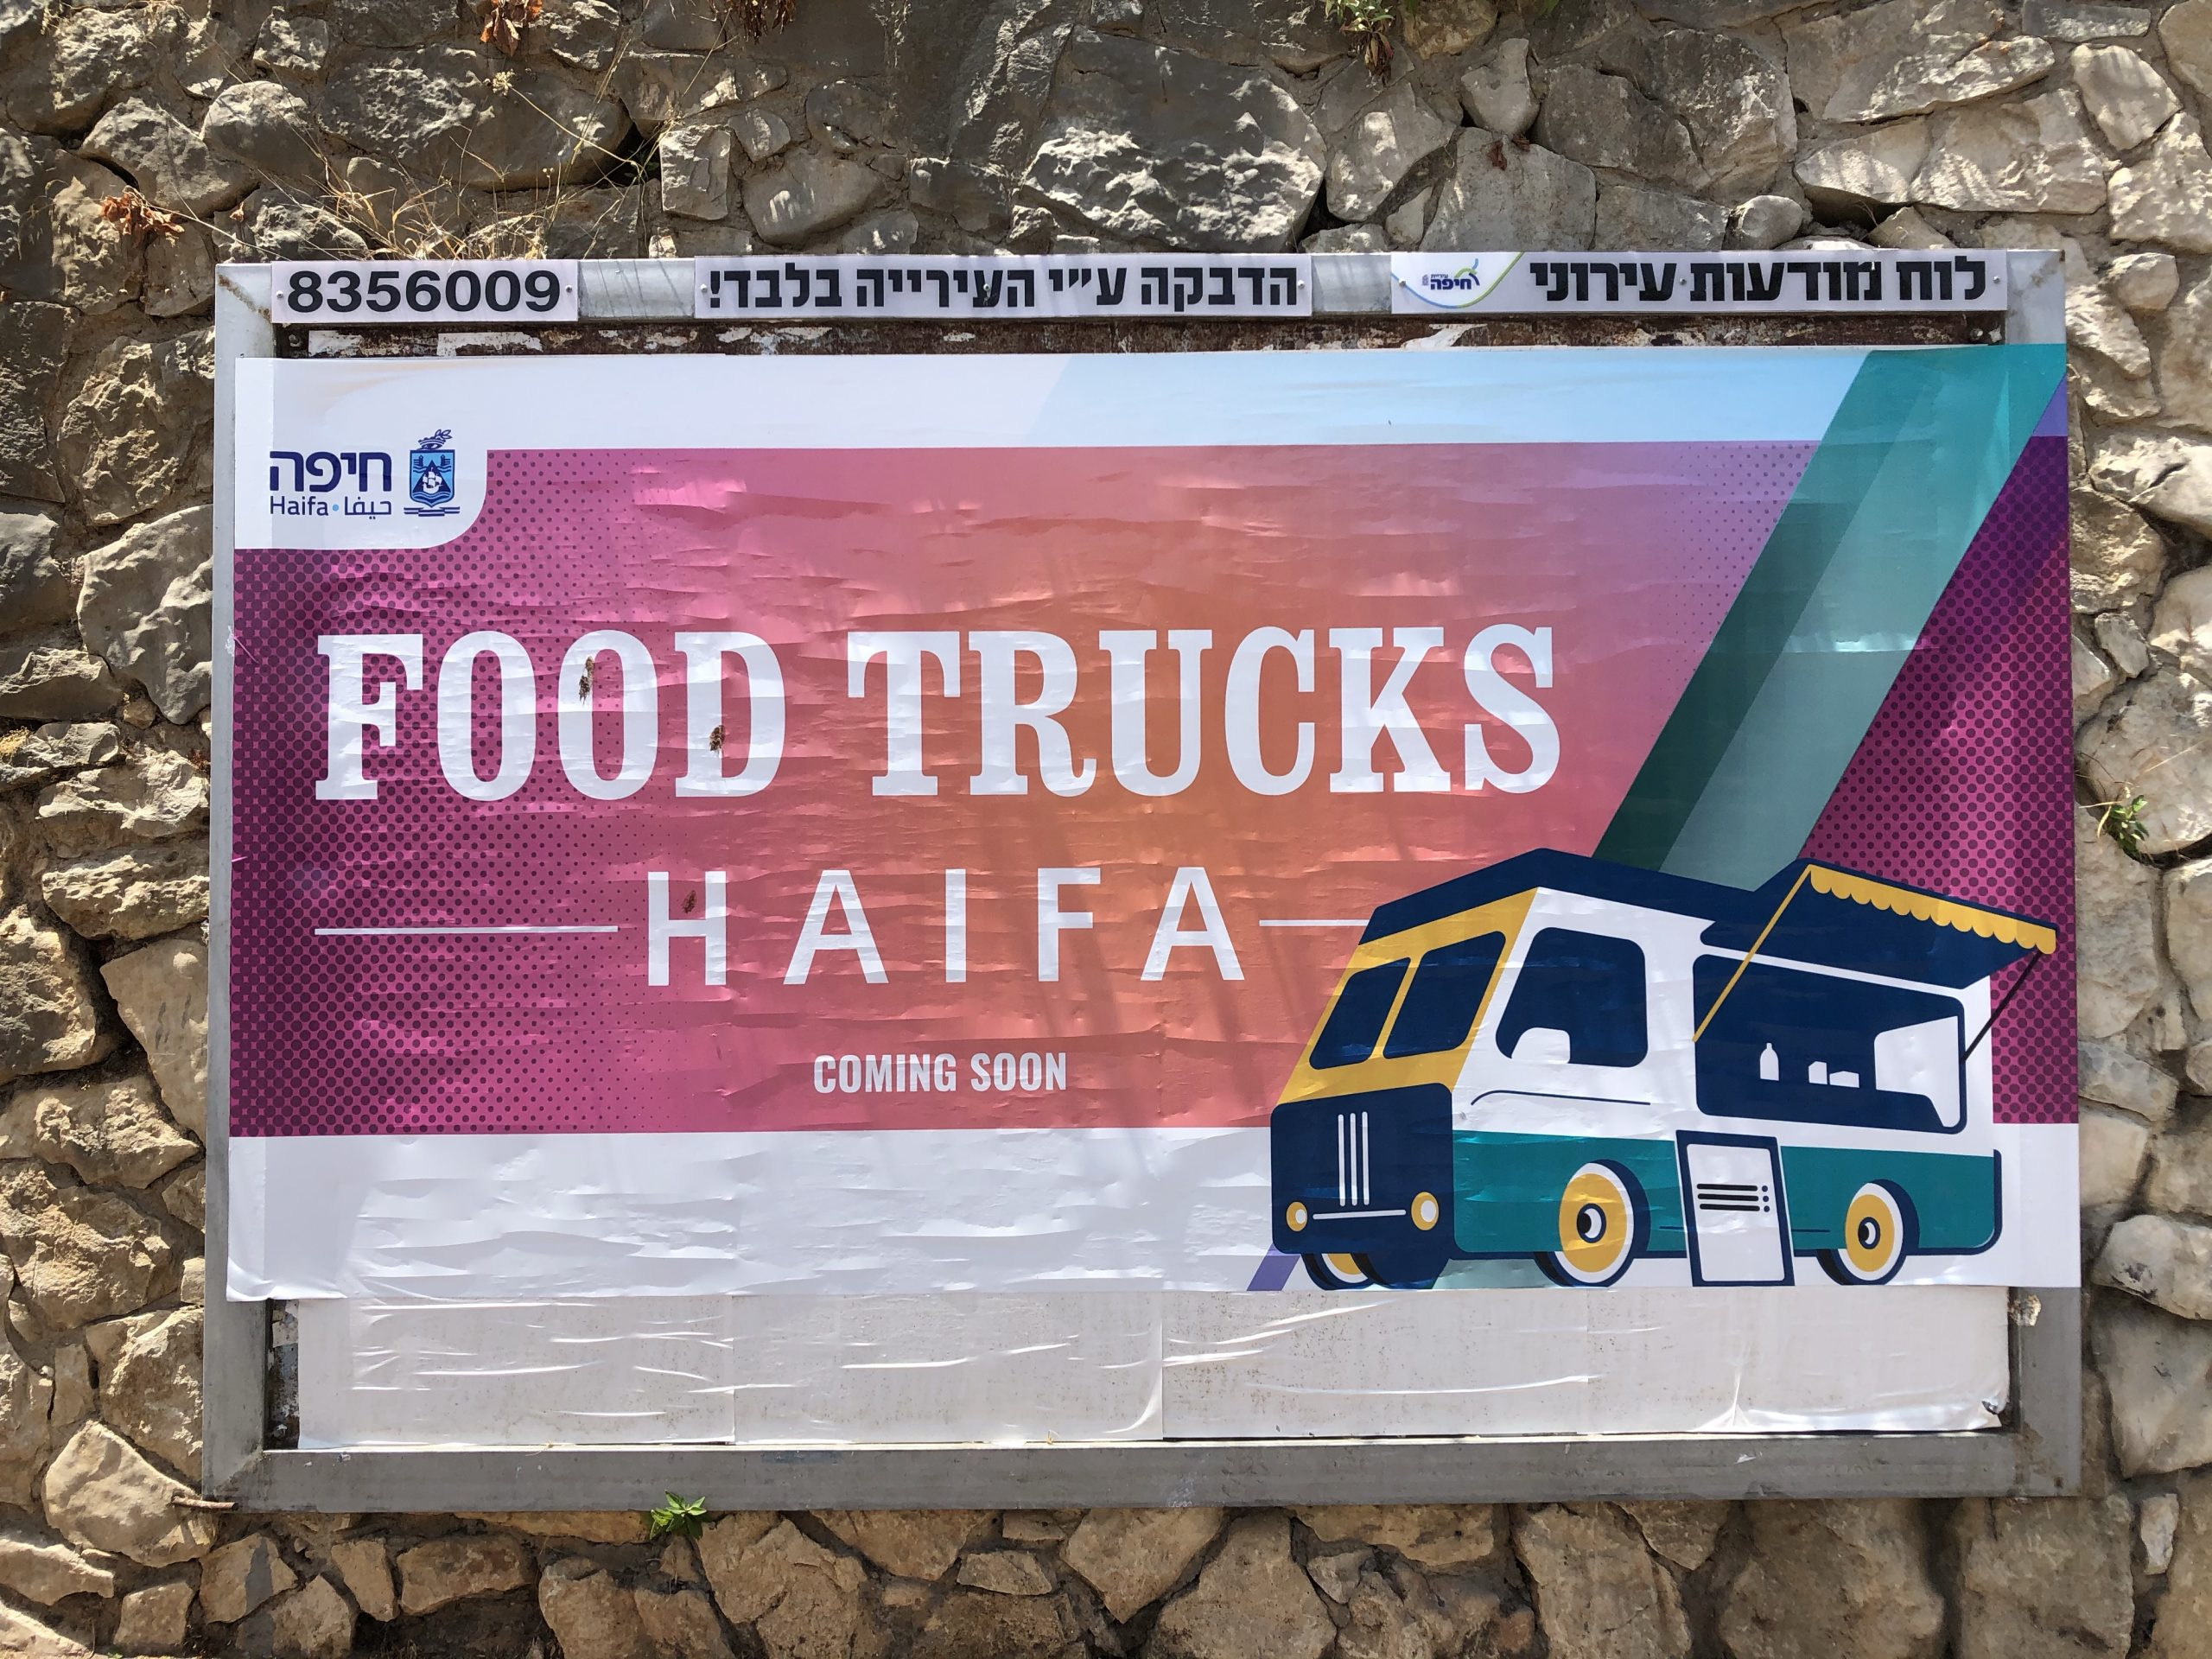 Food Trucks Haifa - Coming Soon